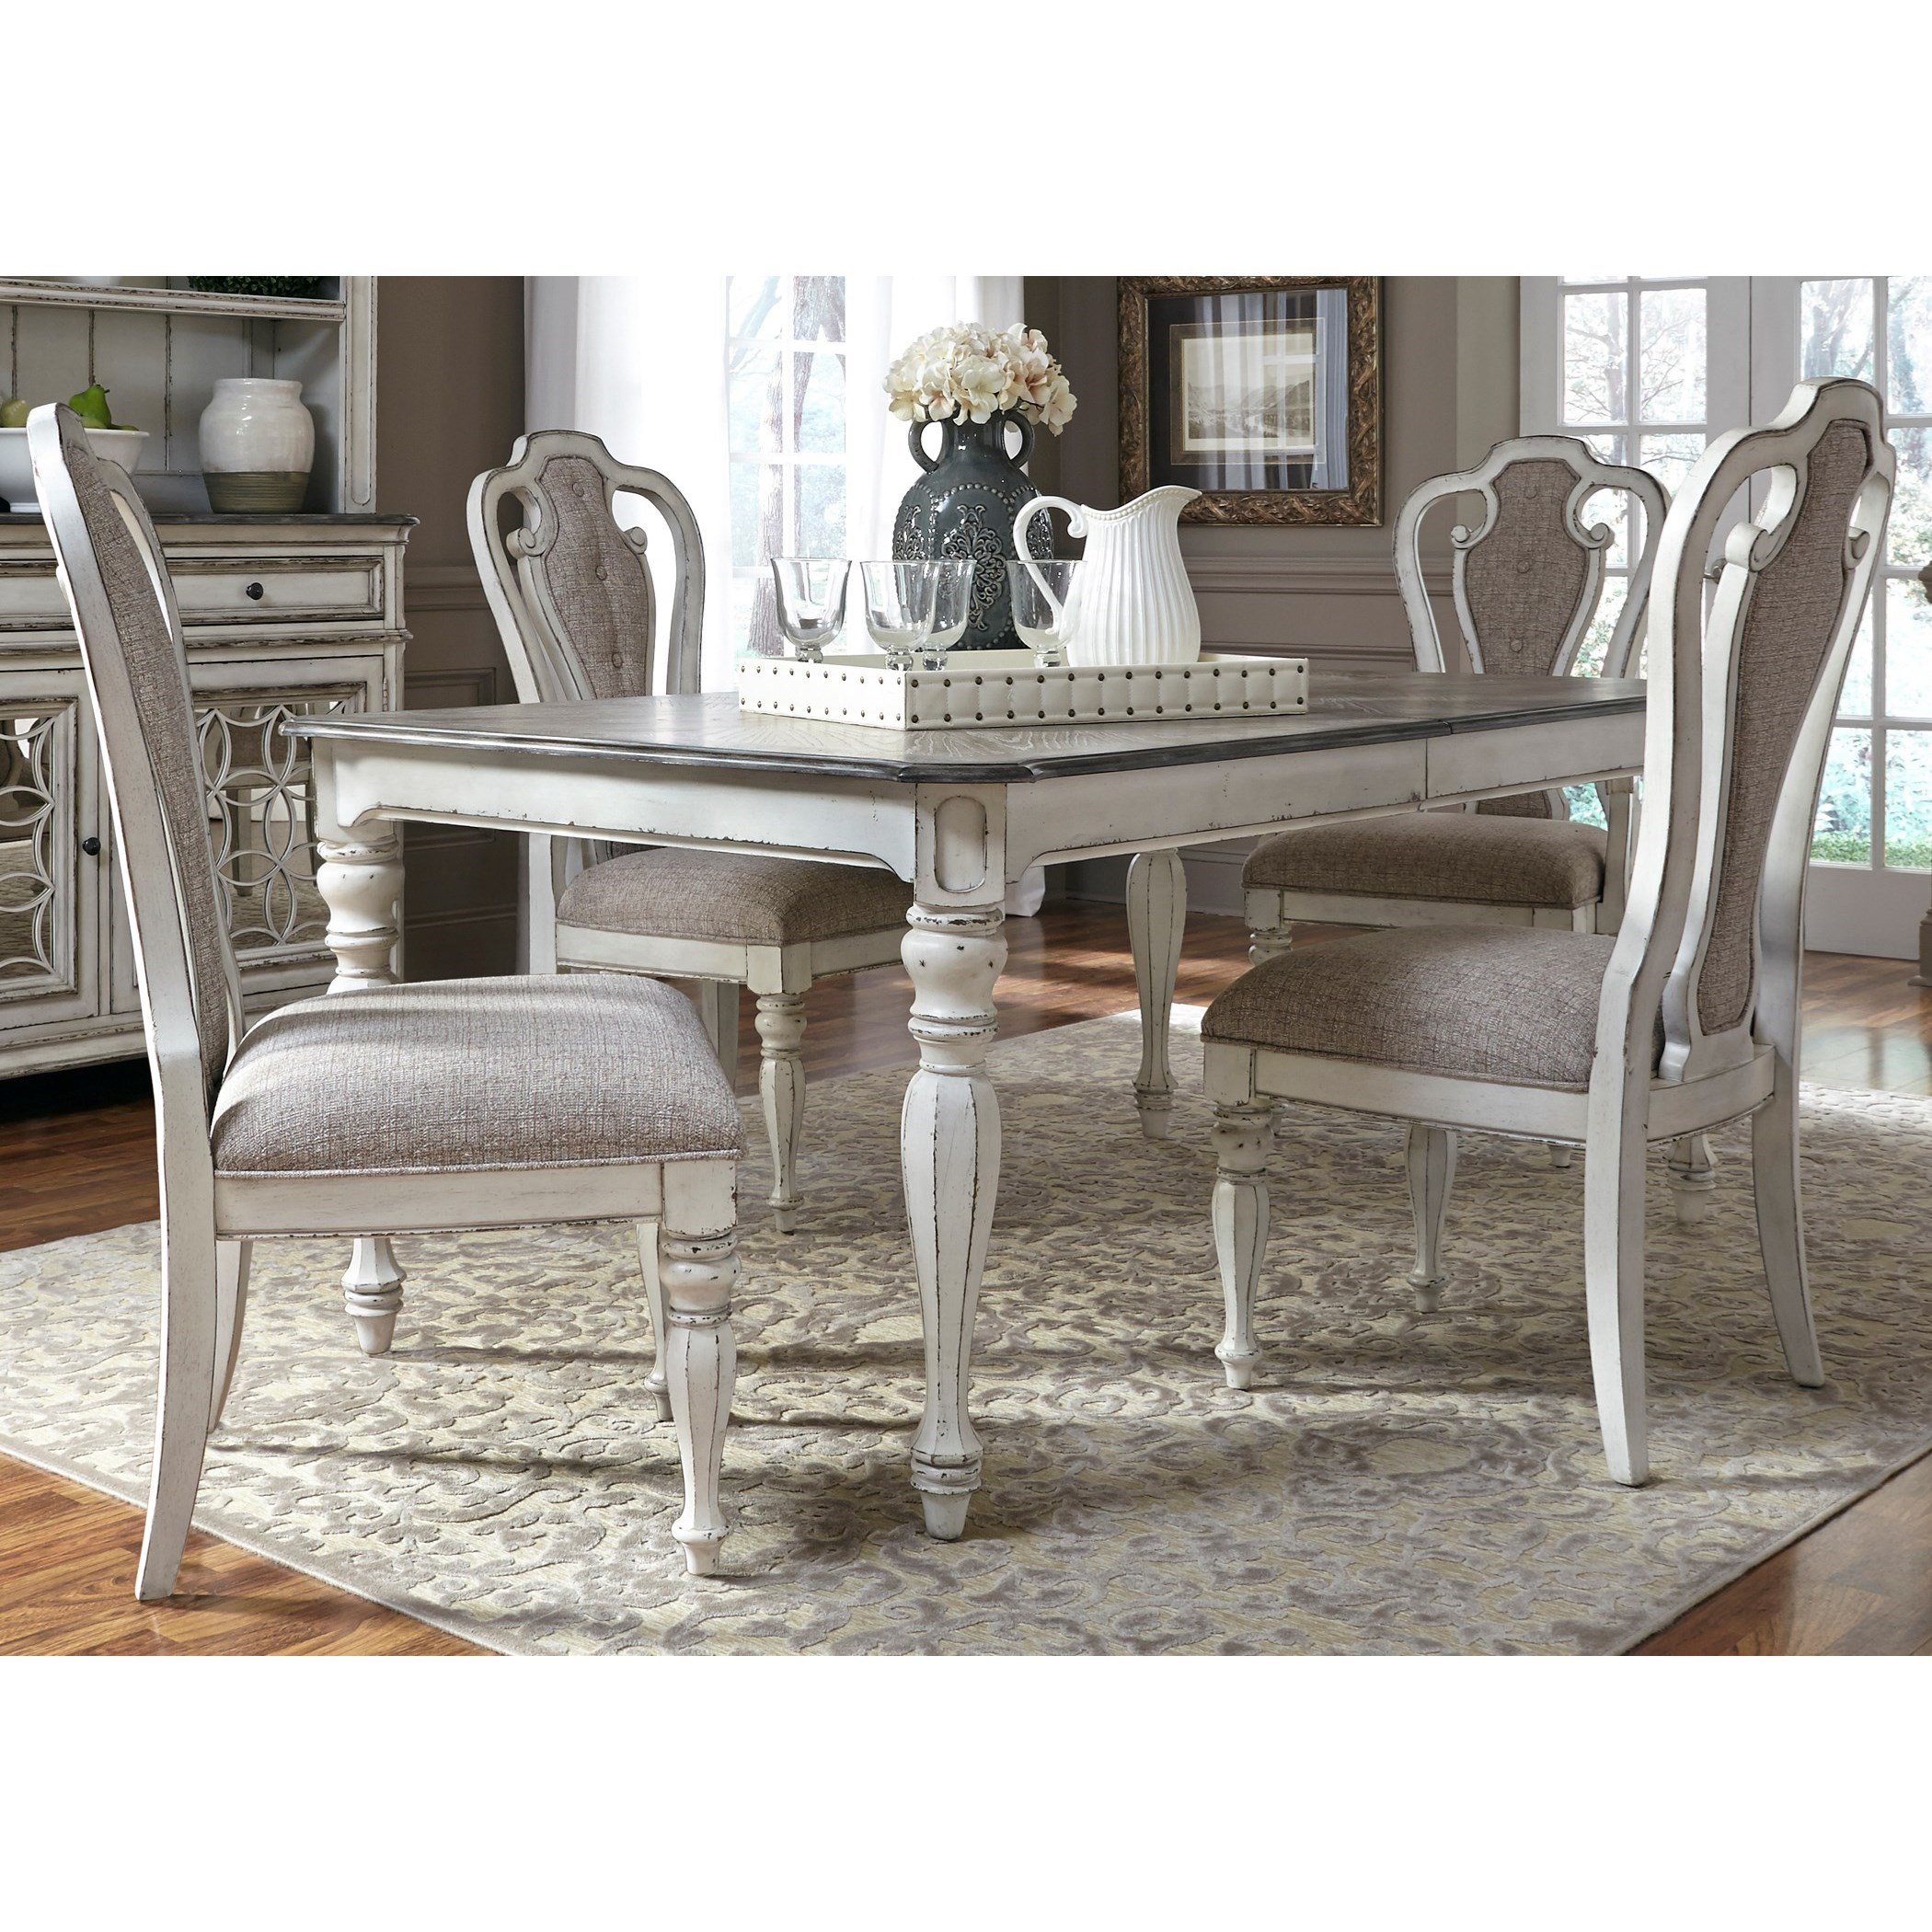 Black Dining Room Table And Chairs Magnolia Manor Dining 5 Piece Rectangular Table Set With Leaf By Liberty Furniture At Furniture Fair North Carolina